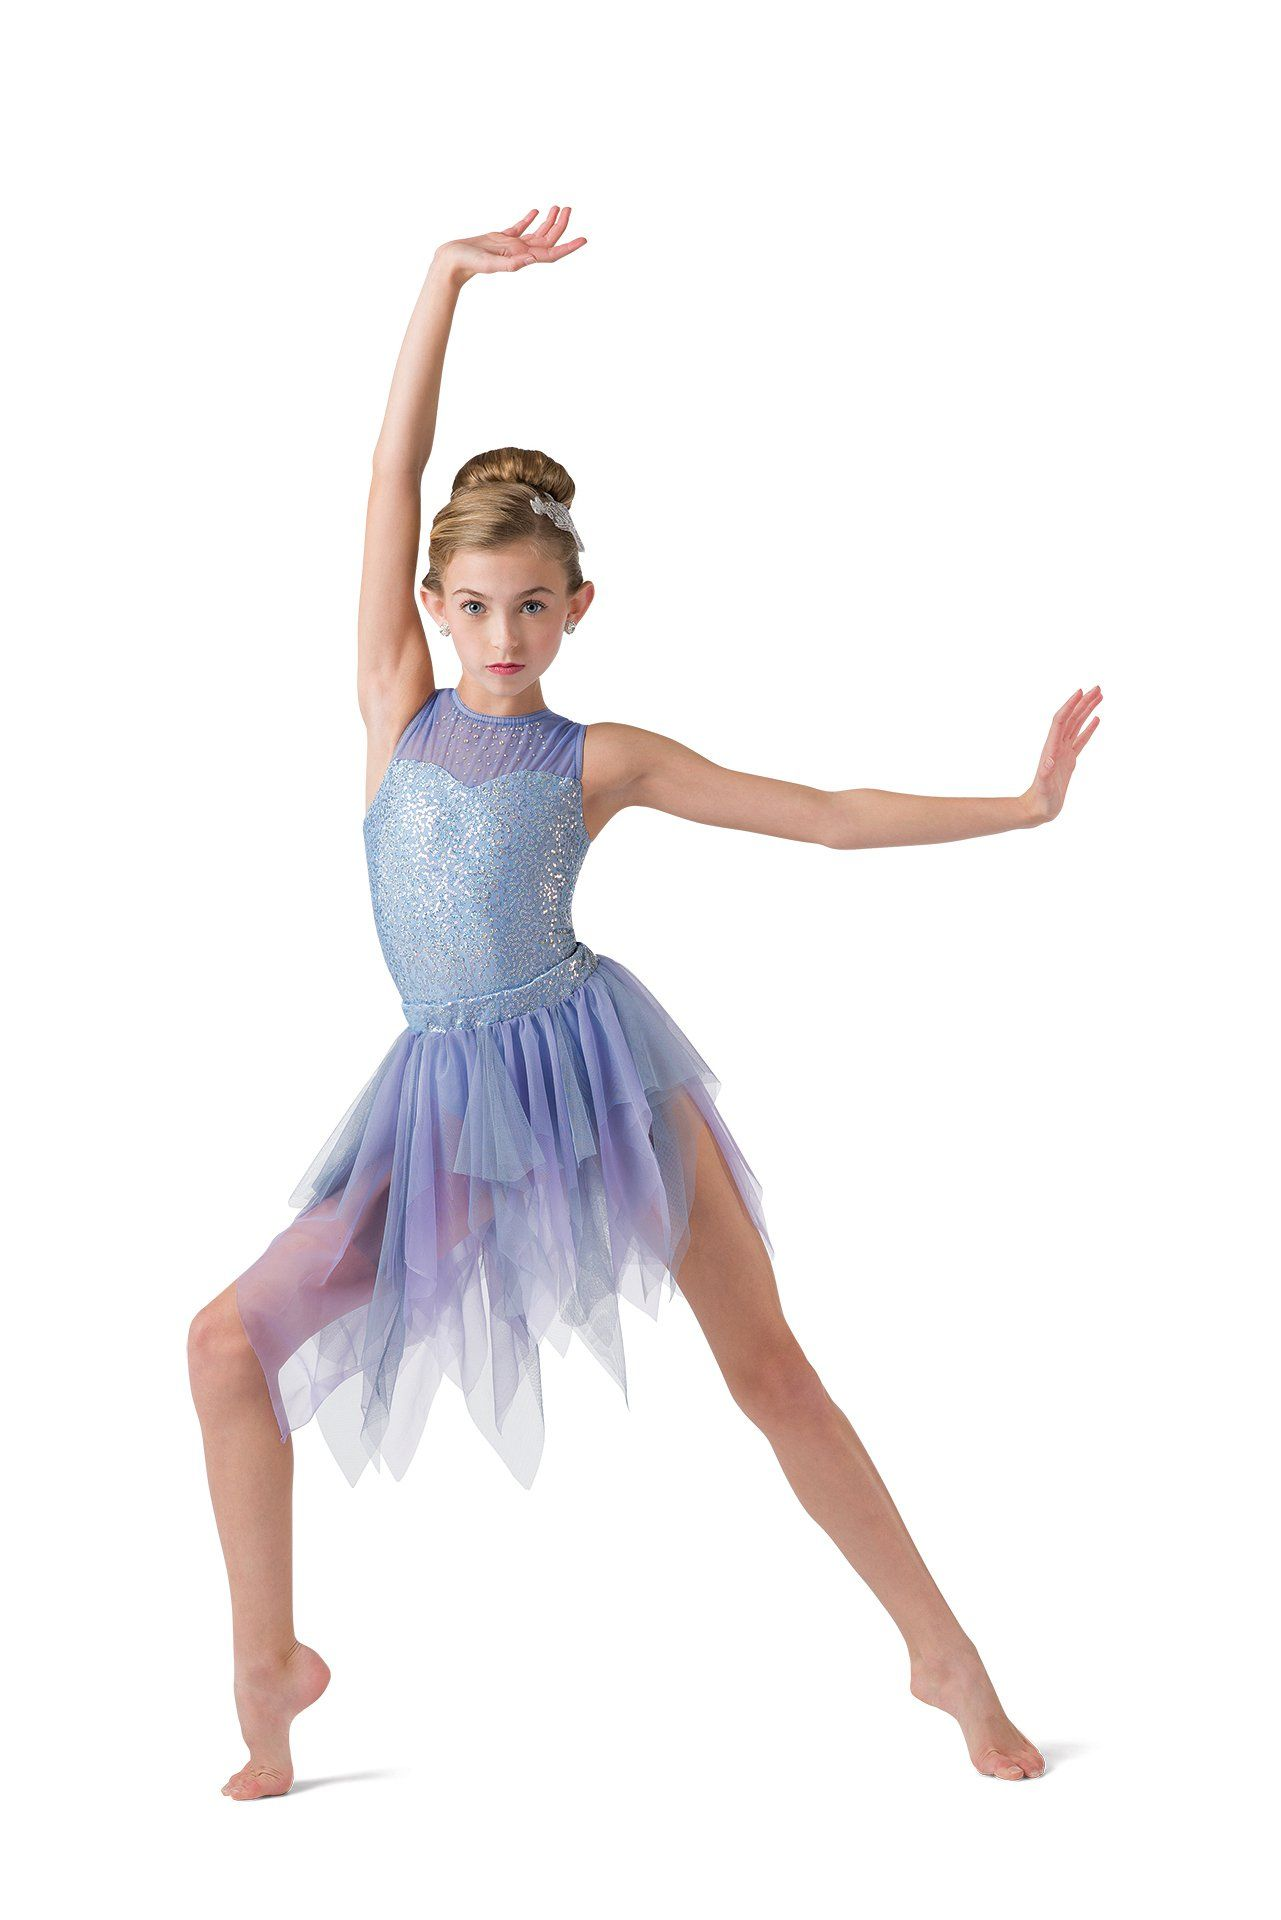 NWT LYRICAL BALLET DANCE COSTUME ch//Ad Chiffon Flyers Gold Braid Green clearstrp